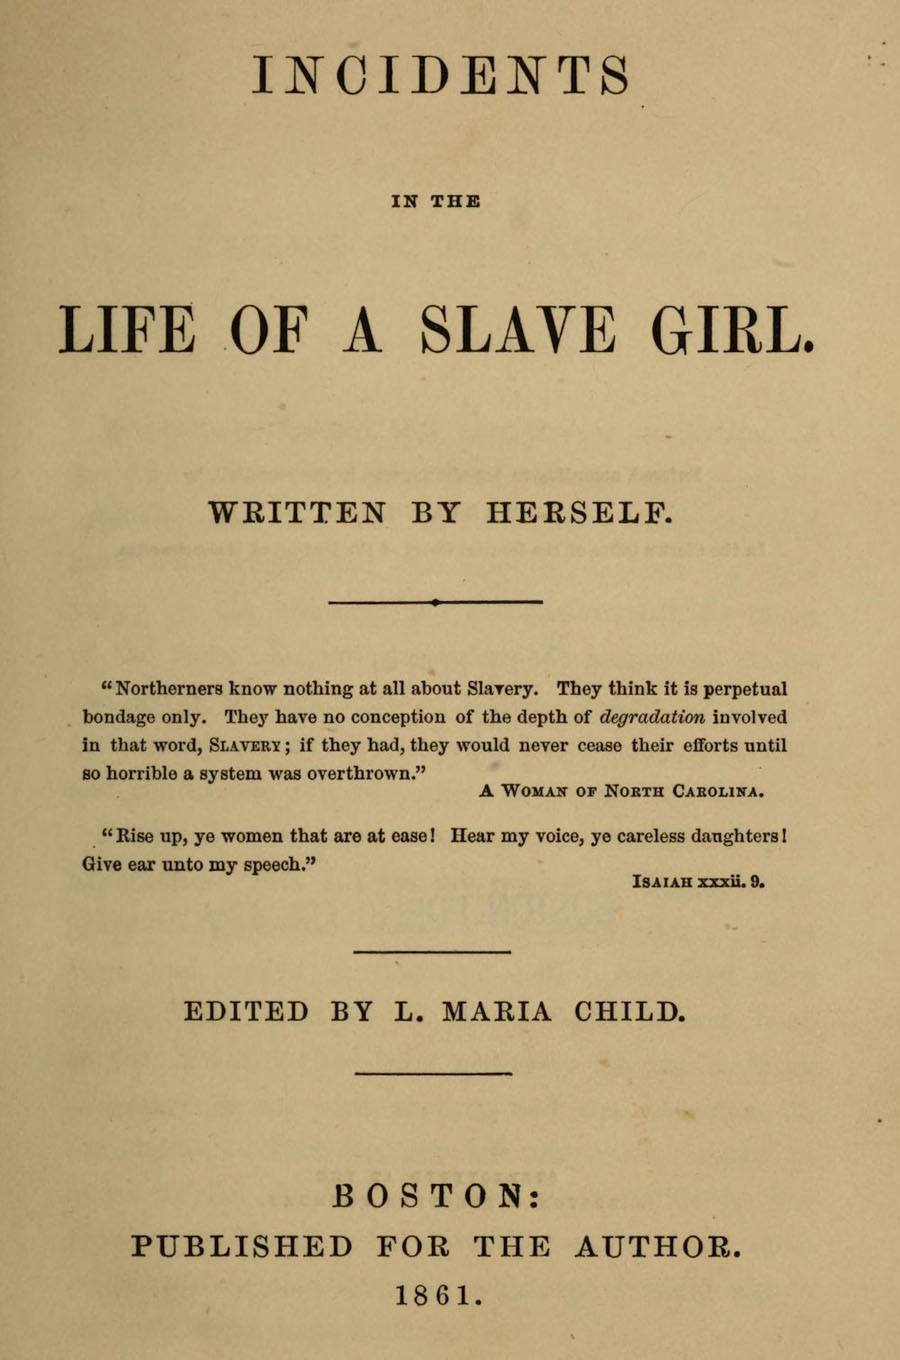 black history harriet jacobs life of a slave girl